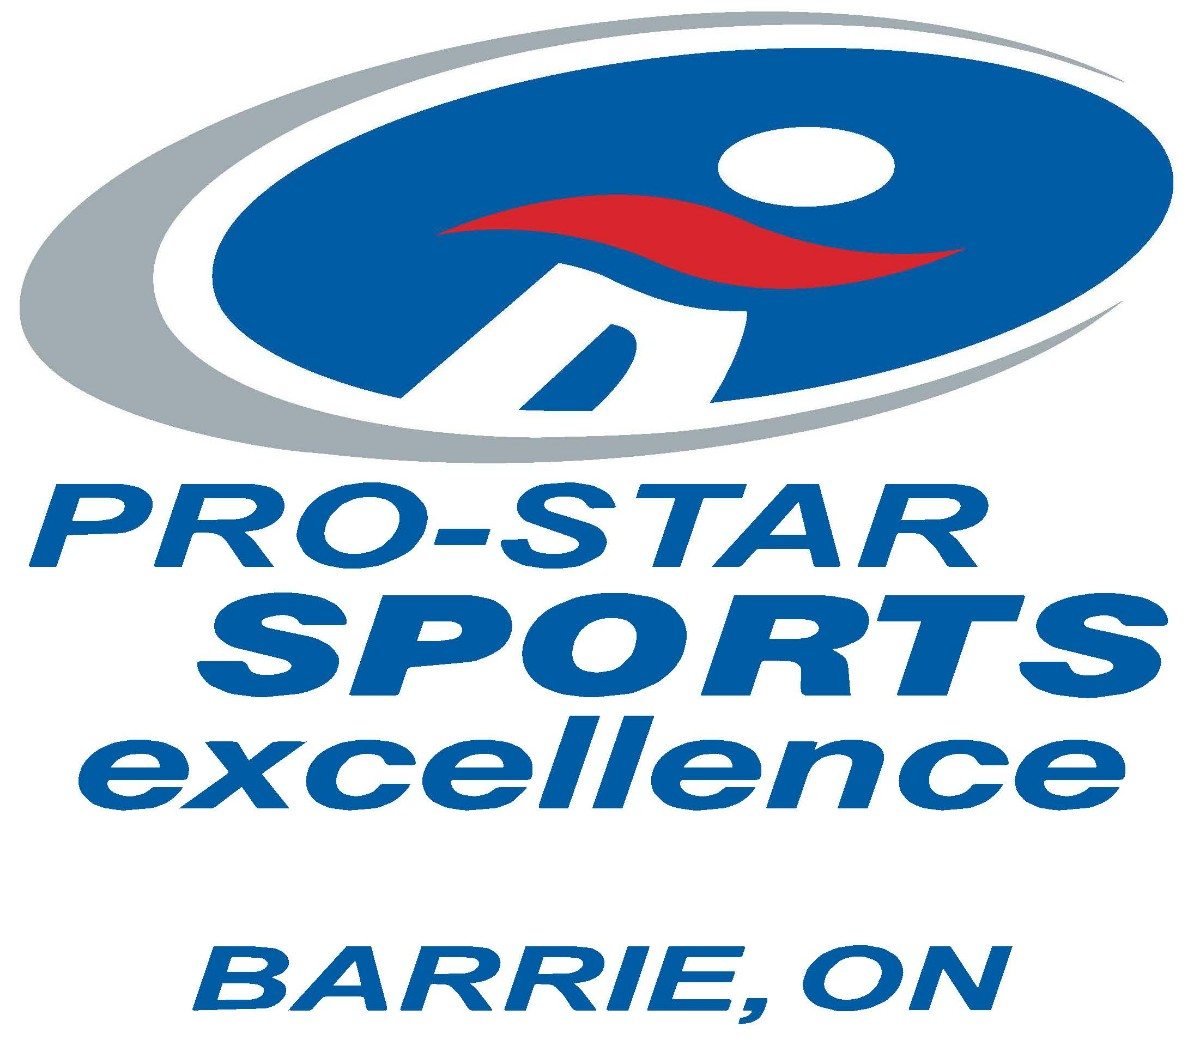 Pro-Star Sports Excellence